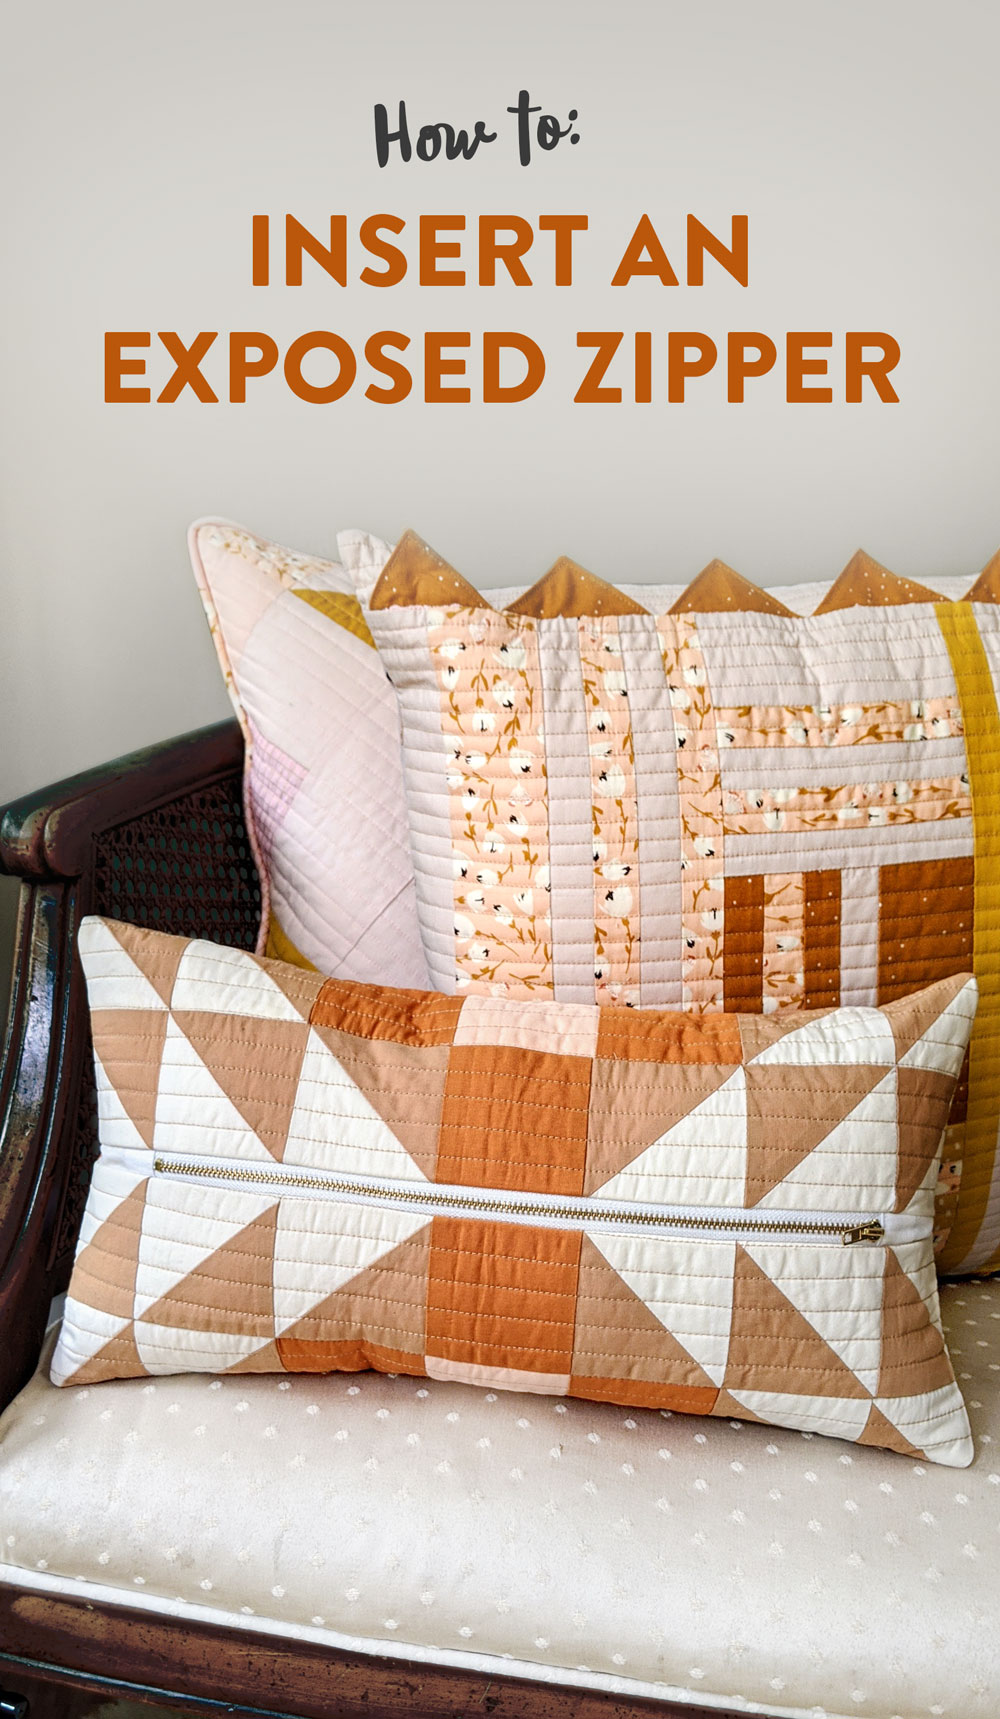 How to insert an exposed zipper into a pillow. Use this beginner tutorial to see how simple it is to sew a zipper in a quilted pillow! suzyquilts.com #zippertutorial